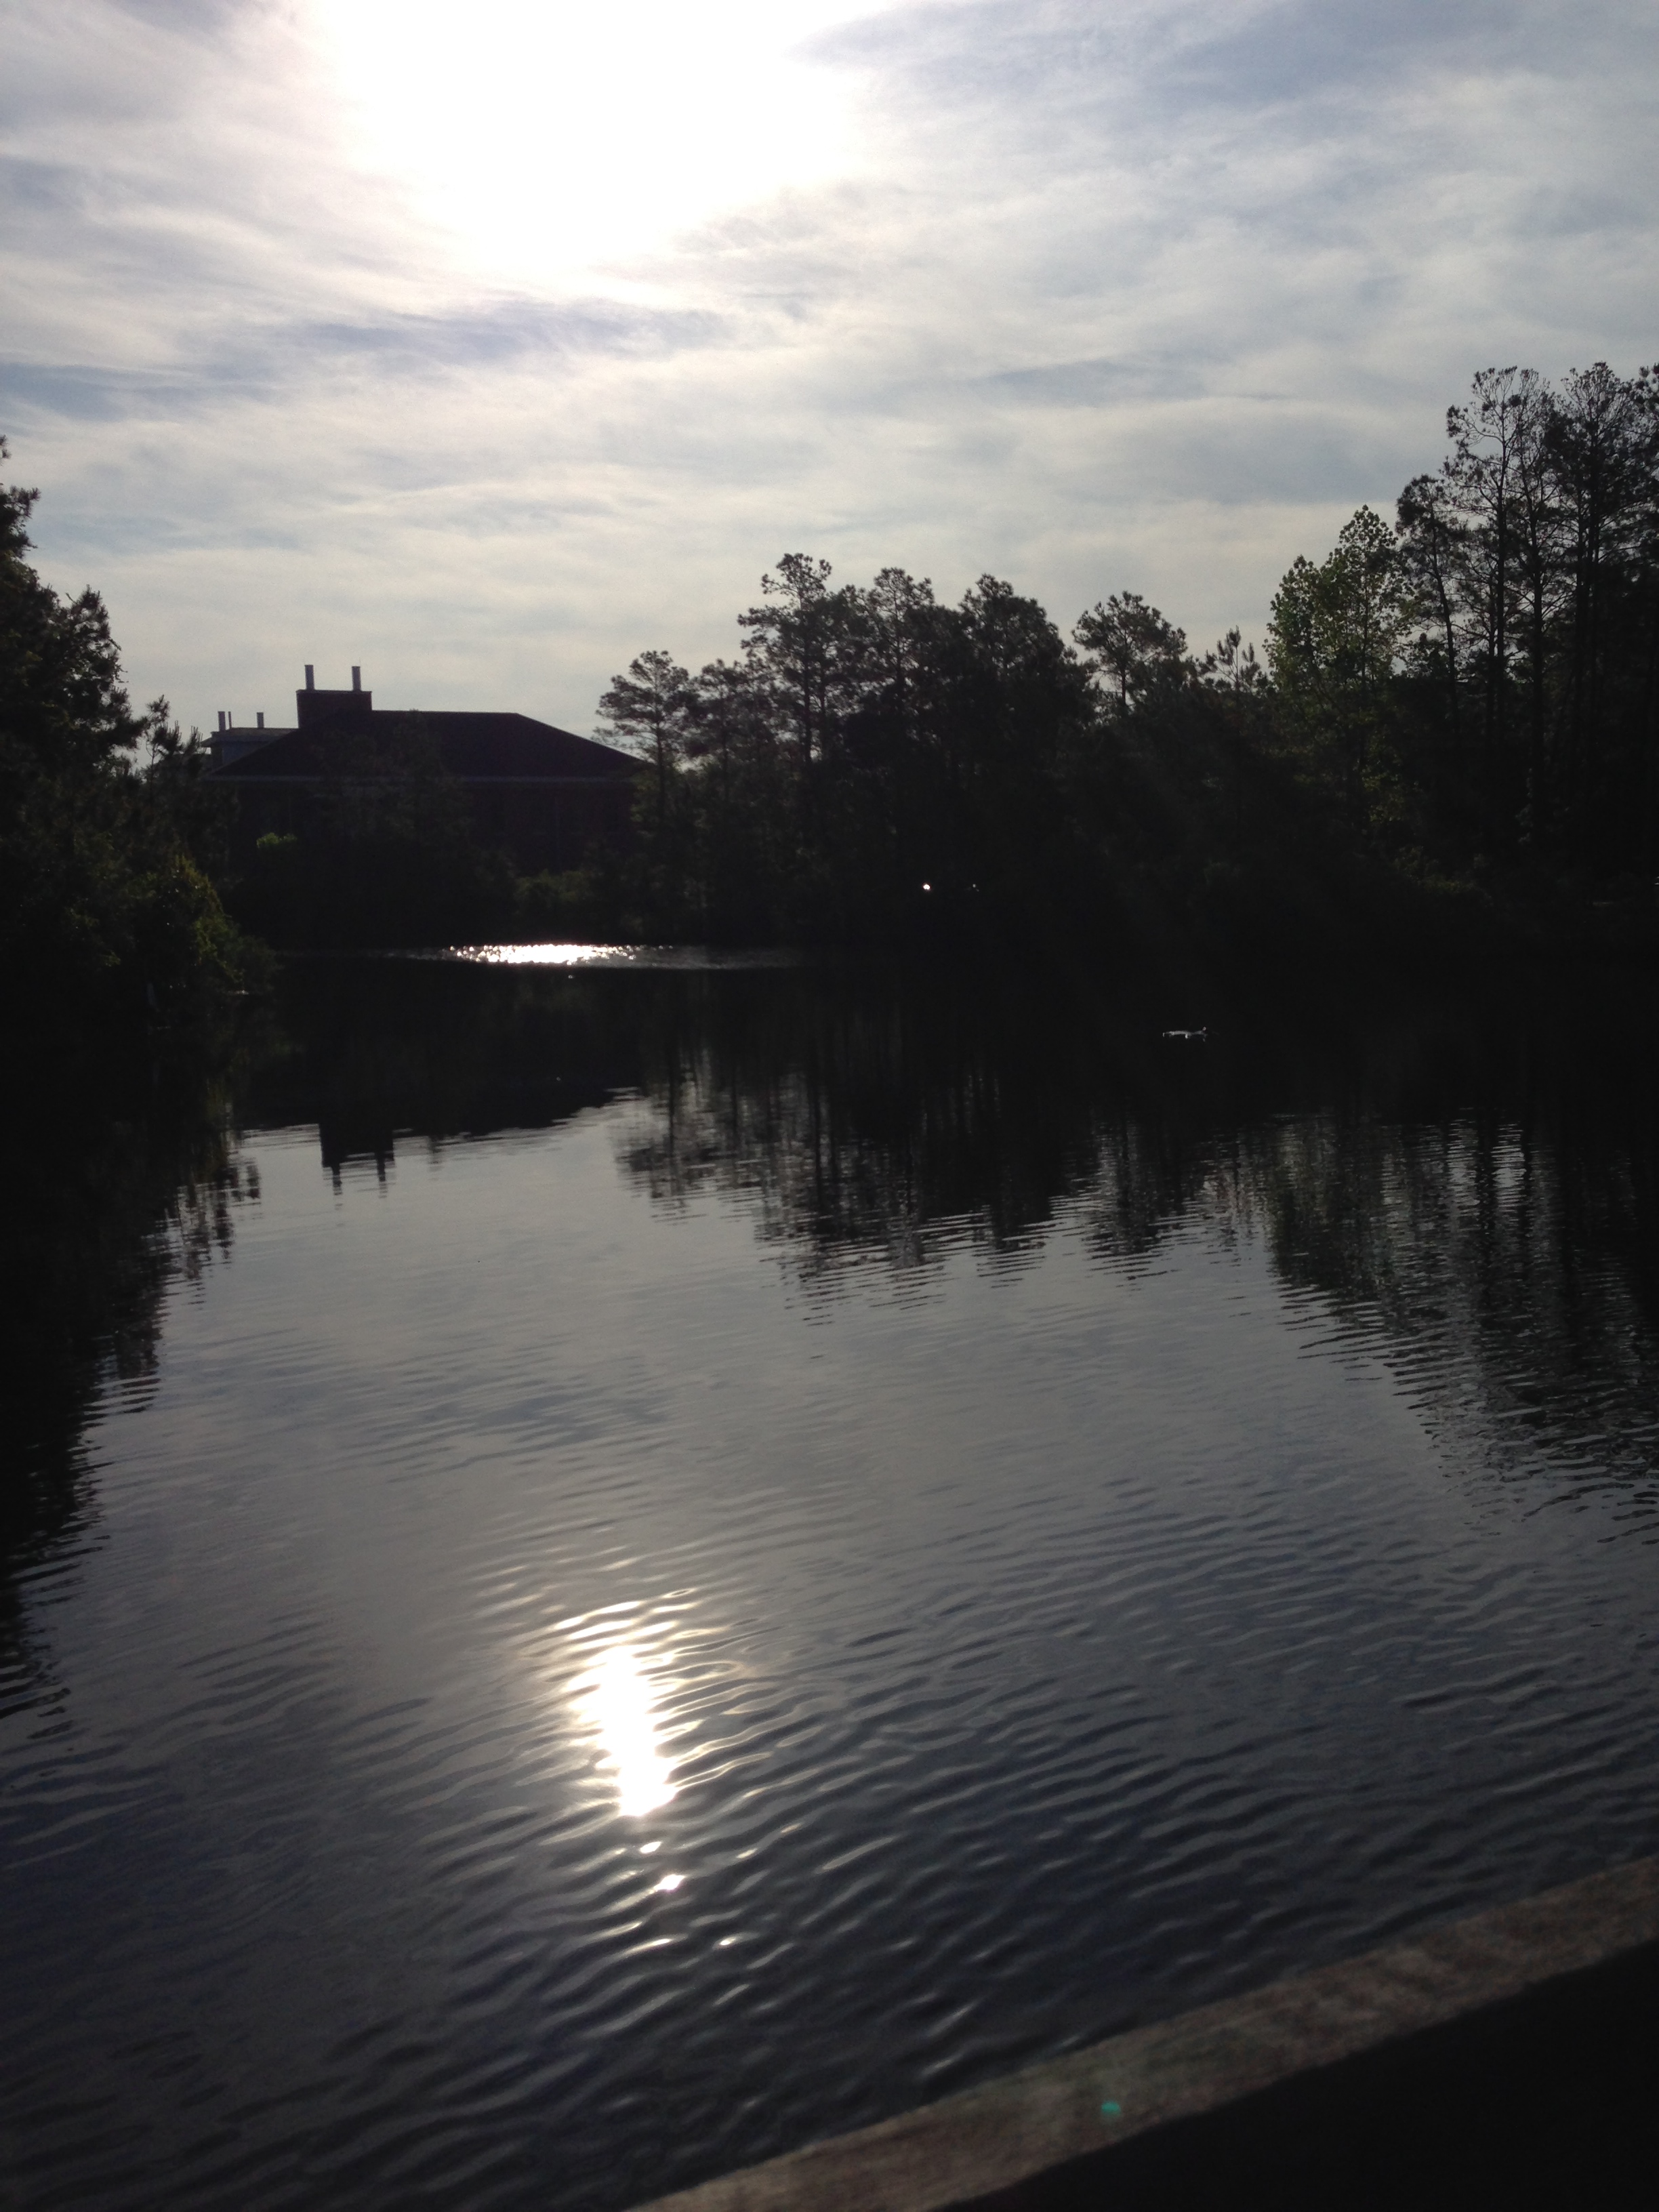 During an early morning stroll on campus I took this photo of the pond while crossing the bridge.